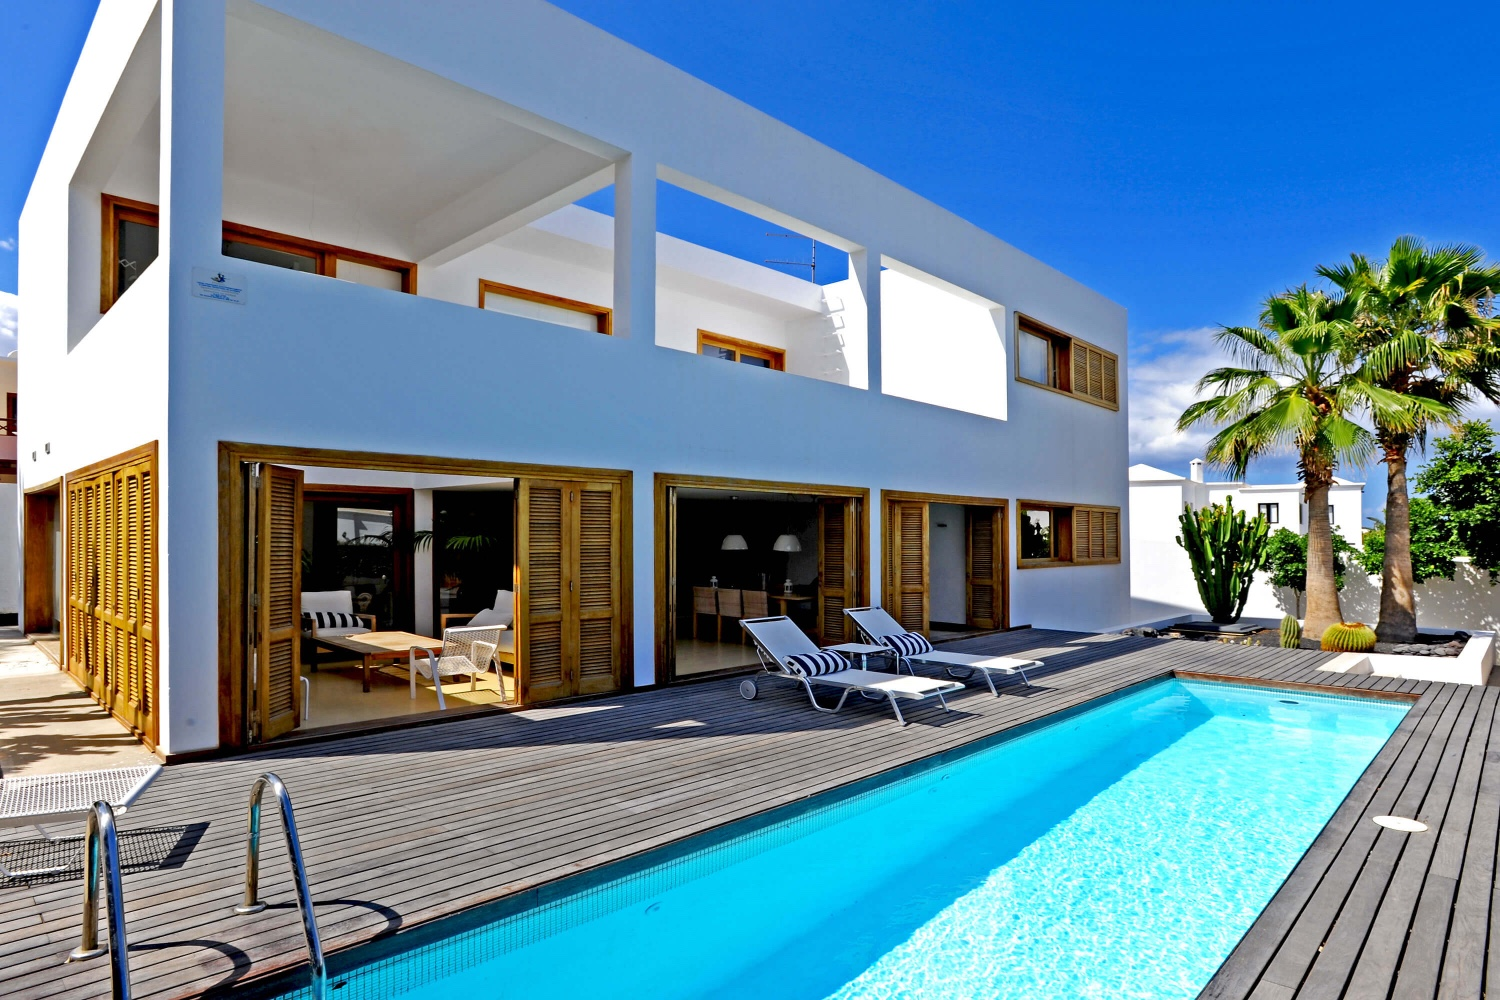 Charming, spacious and bright luxury villa with private pool and an ideal location in Costa Teguise